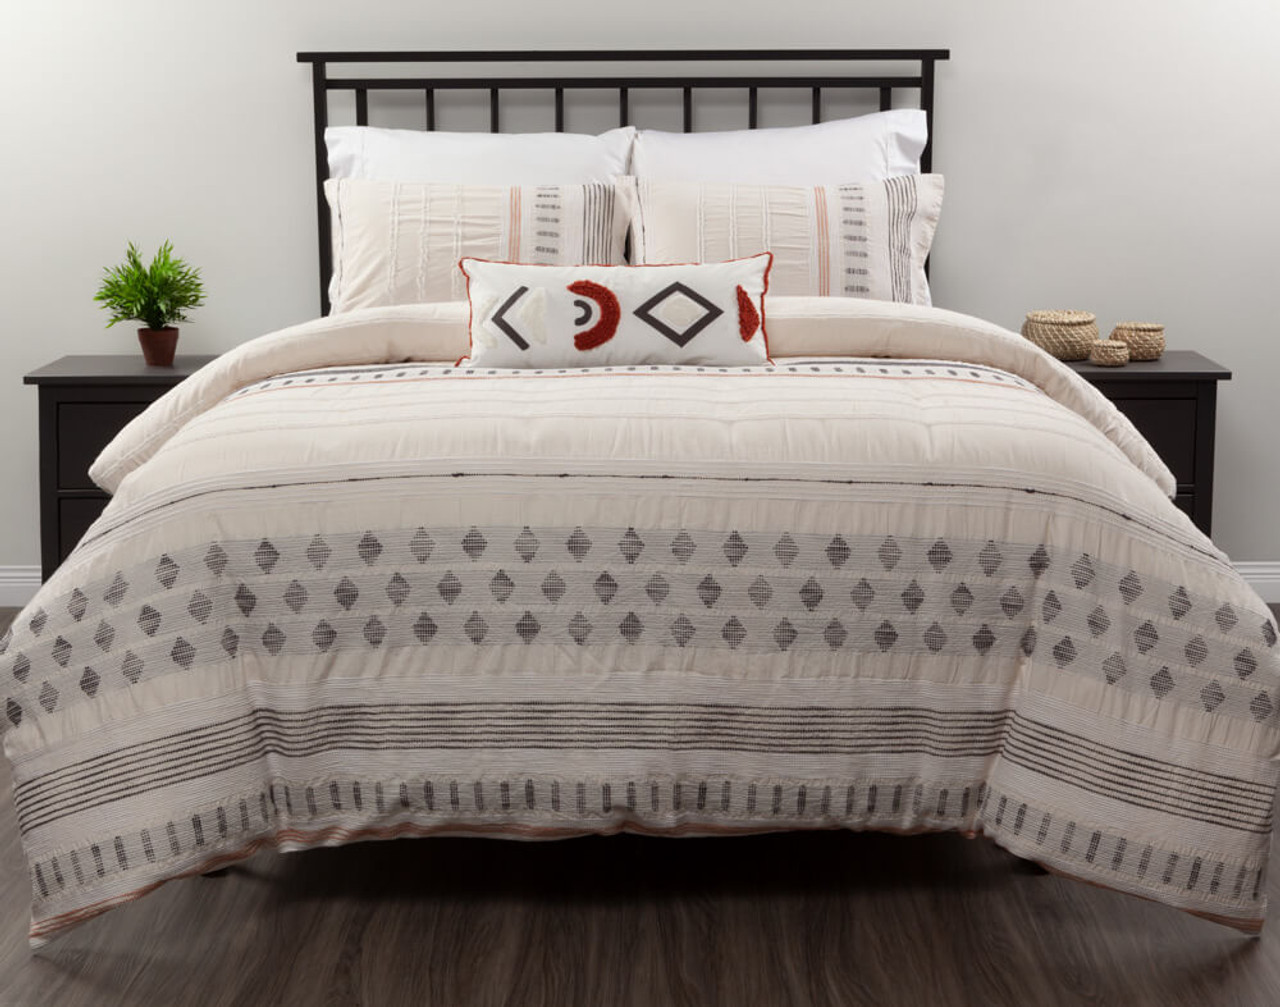 Gibson Bedding Collection, front view.